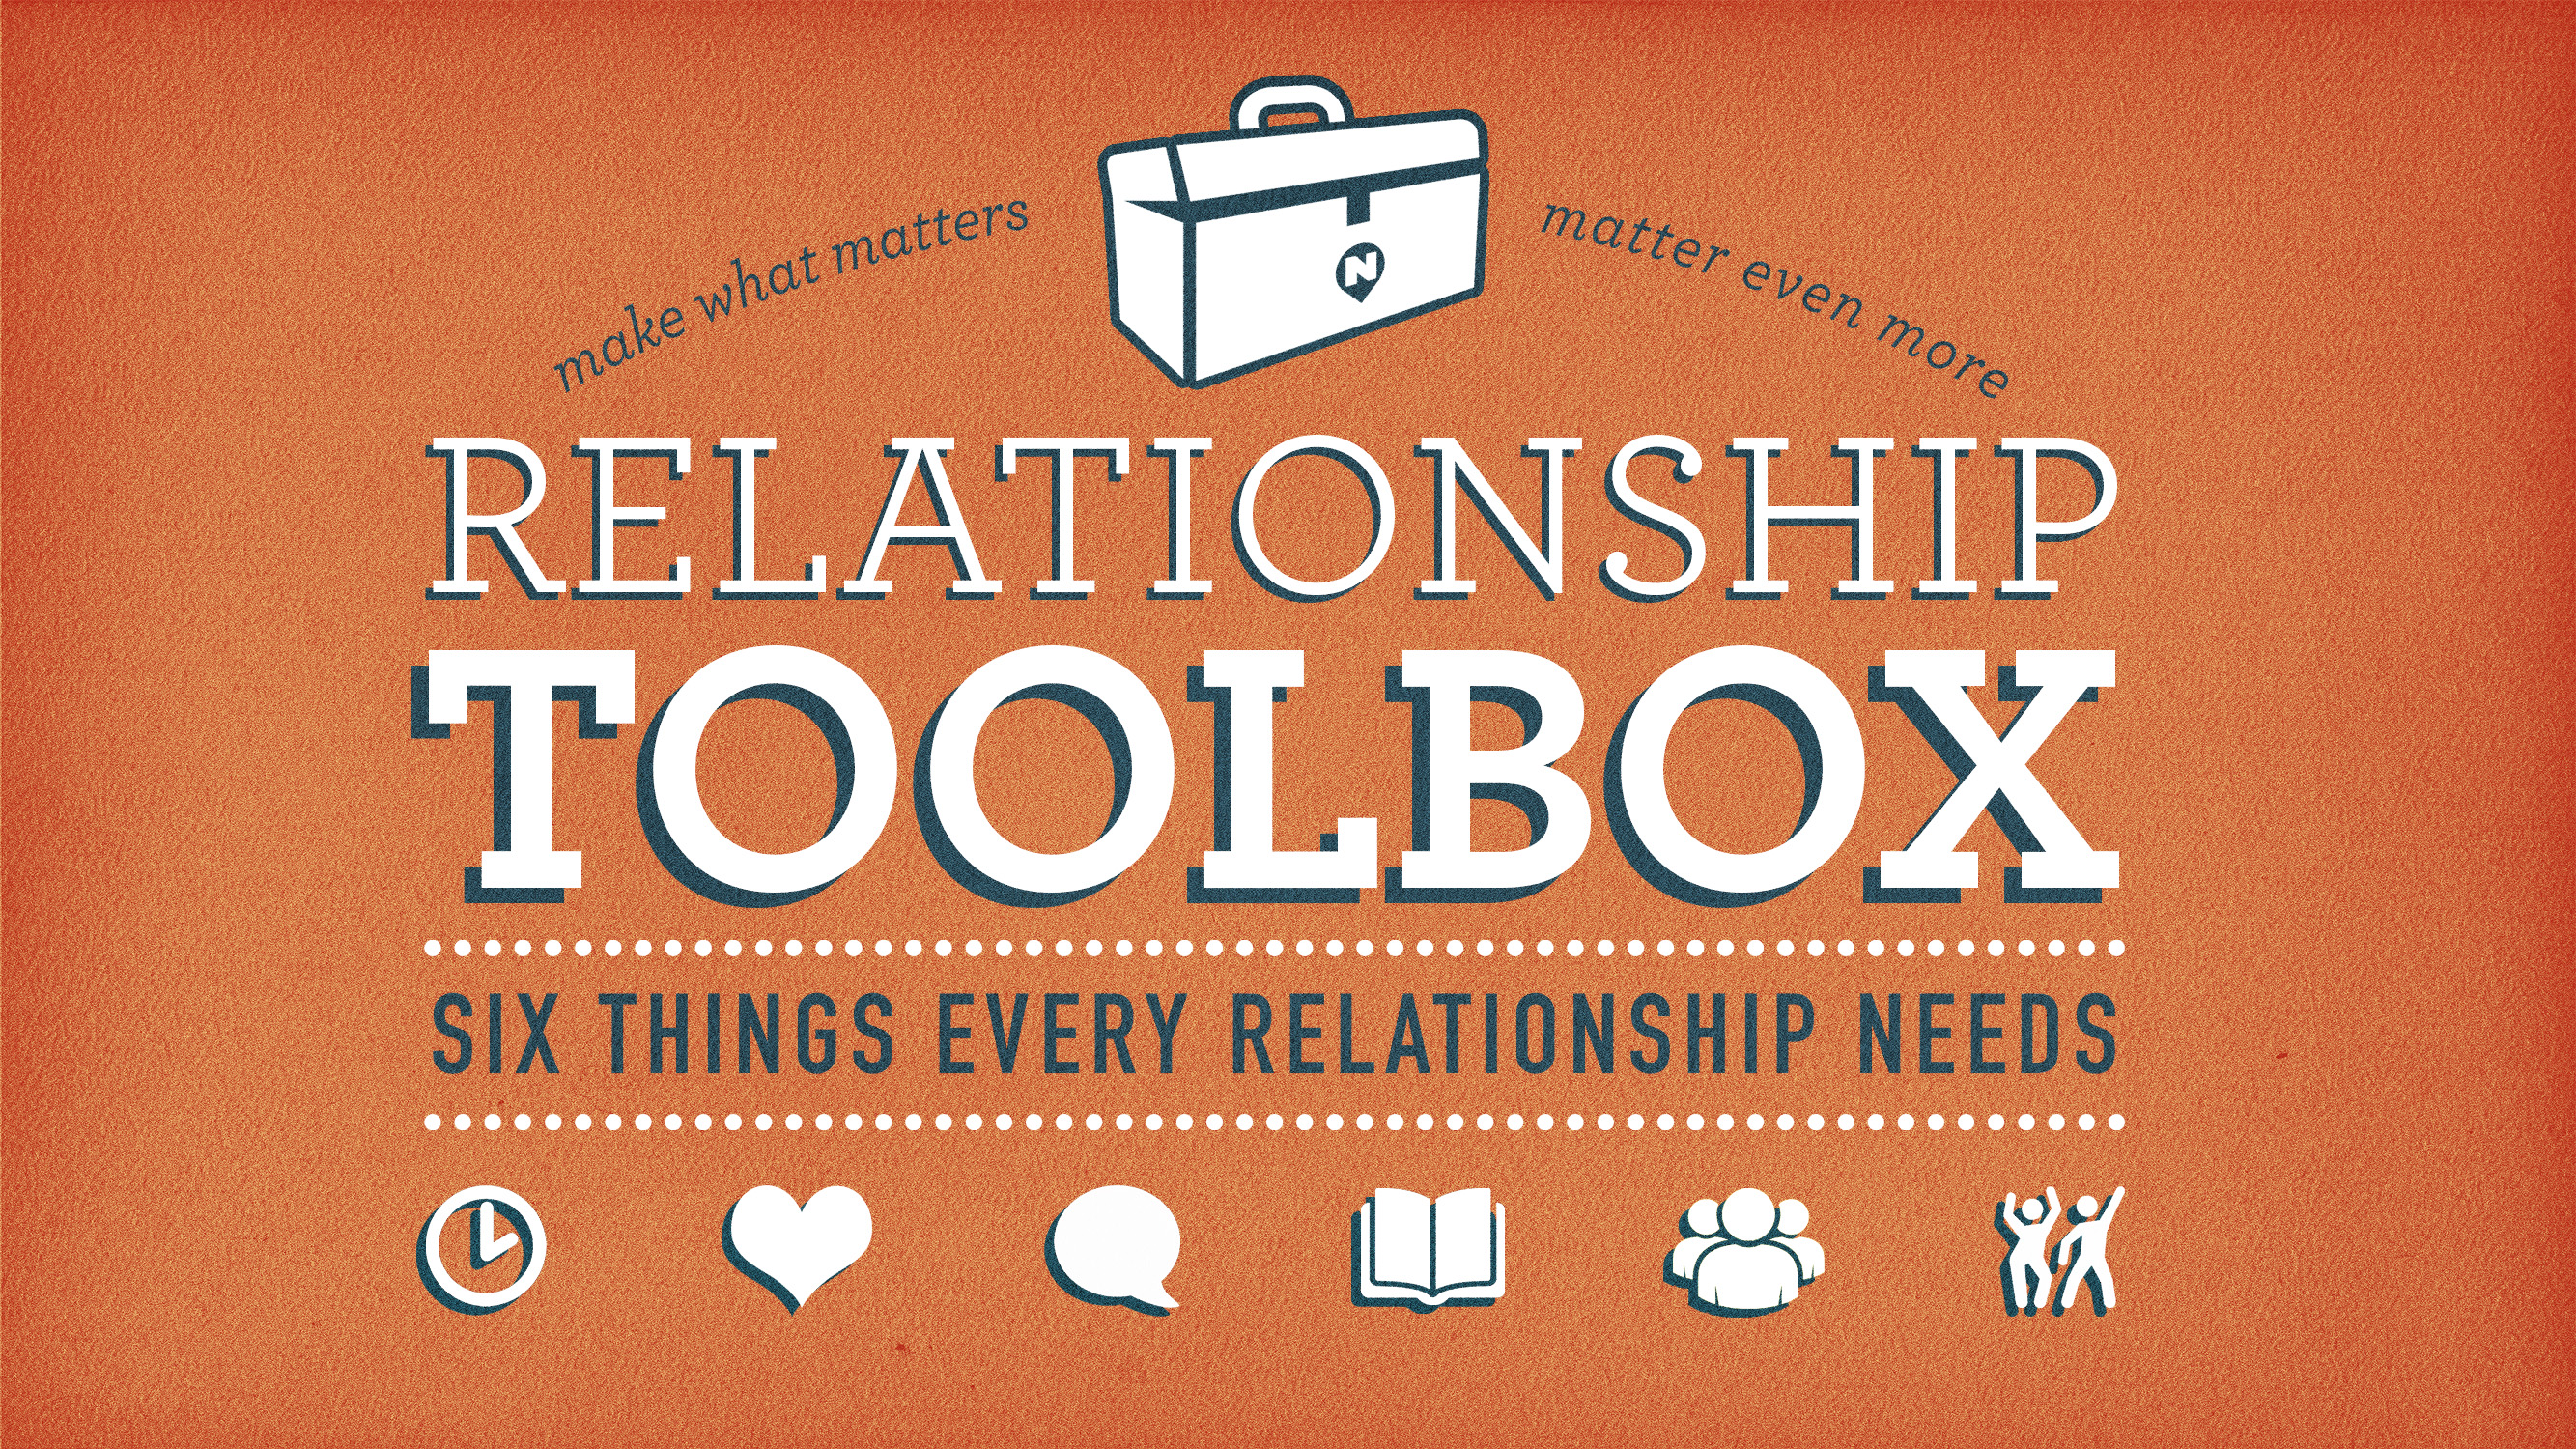 00 - TITLE (Relationship Toolbox)